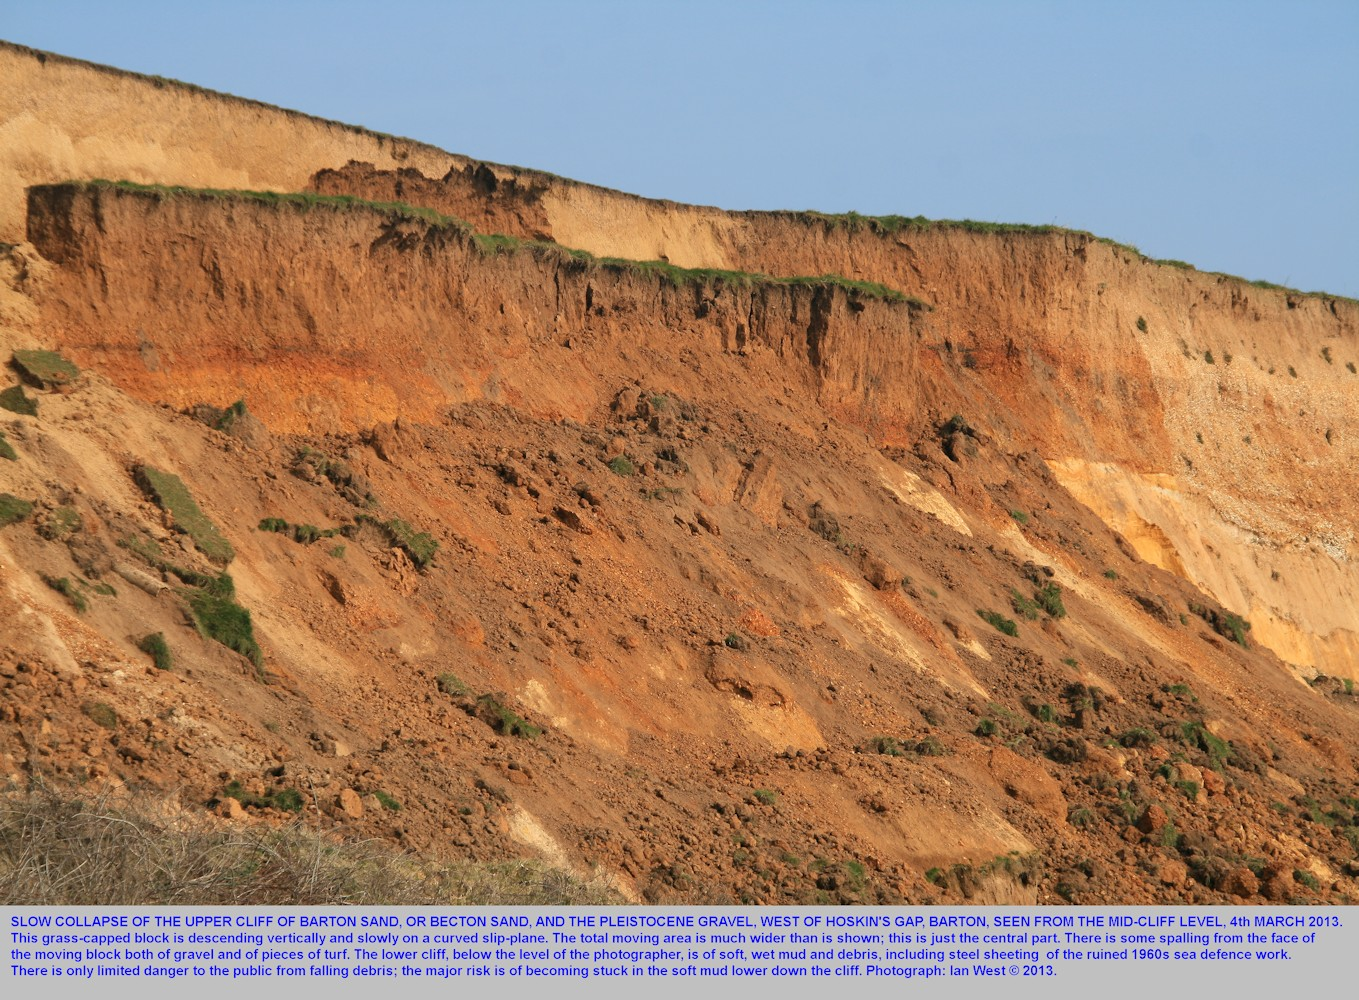 The March 2013 cliff collapse west of Hoskin's Gap, Barton-on-Sea, Hampshire, seen from the mid-cliff level